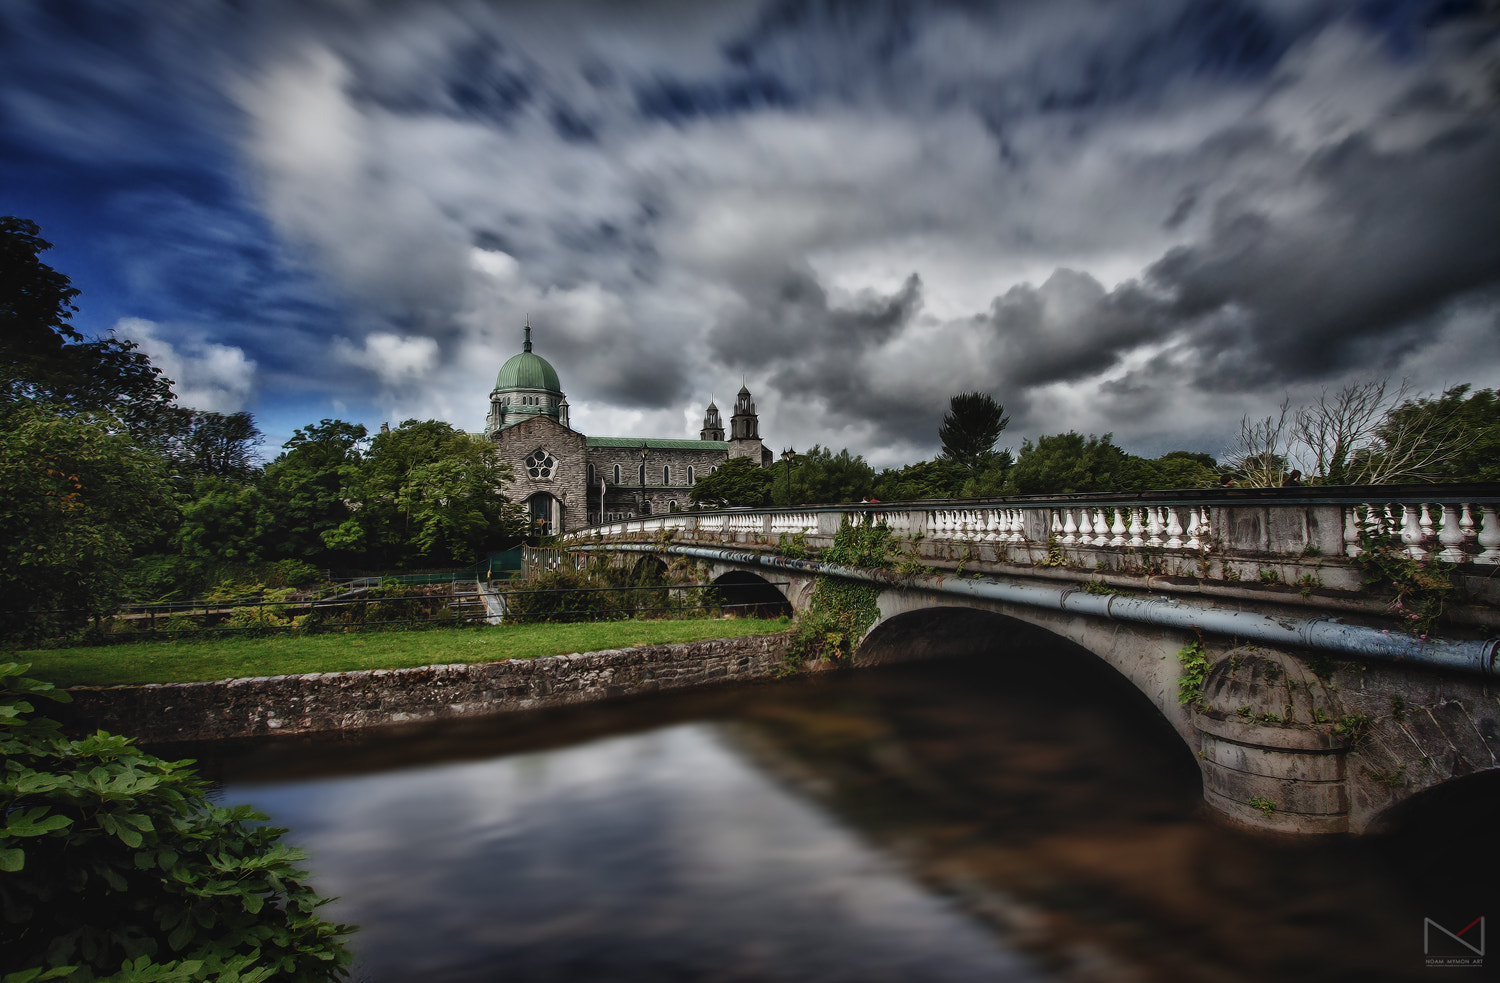 Photograph Galway cathedral by Noam Mymon on 500px